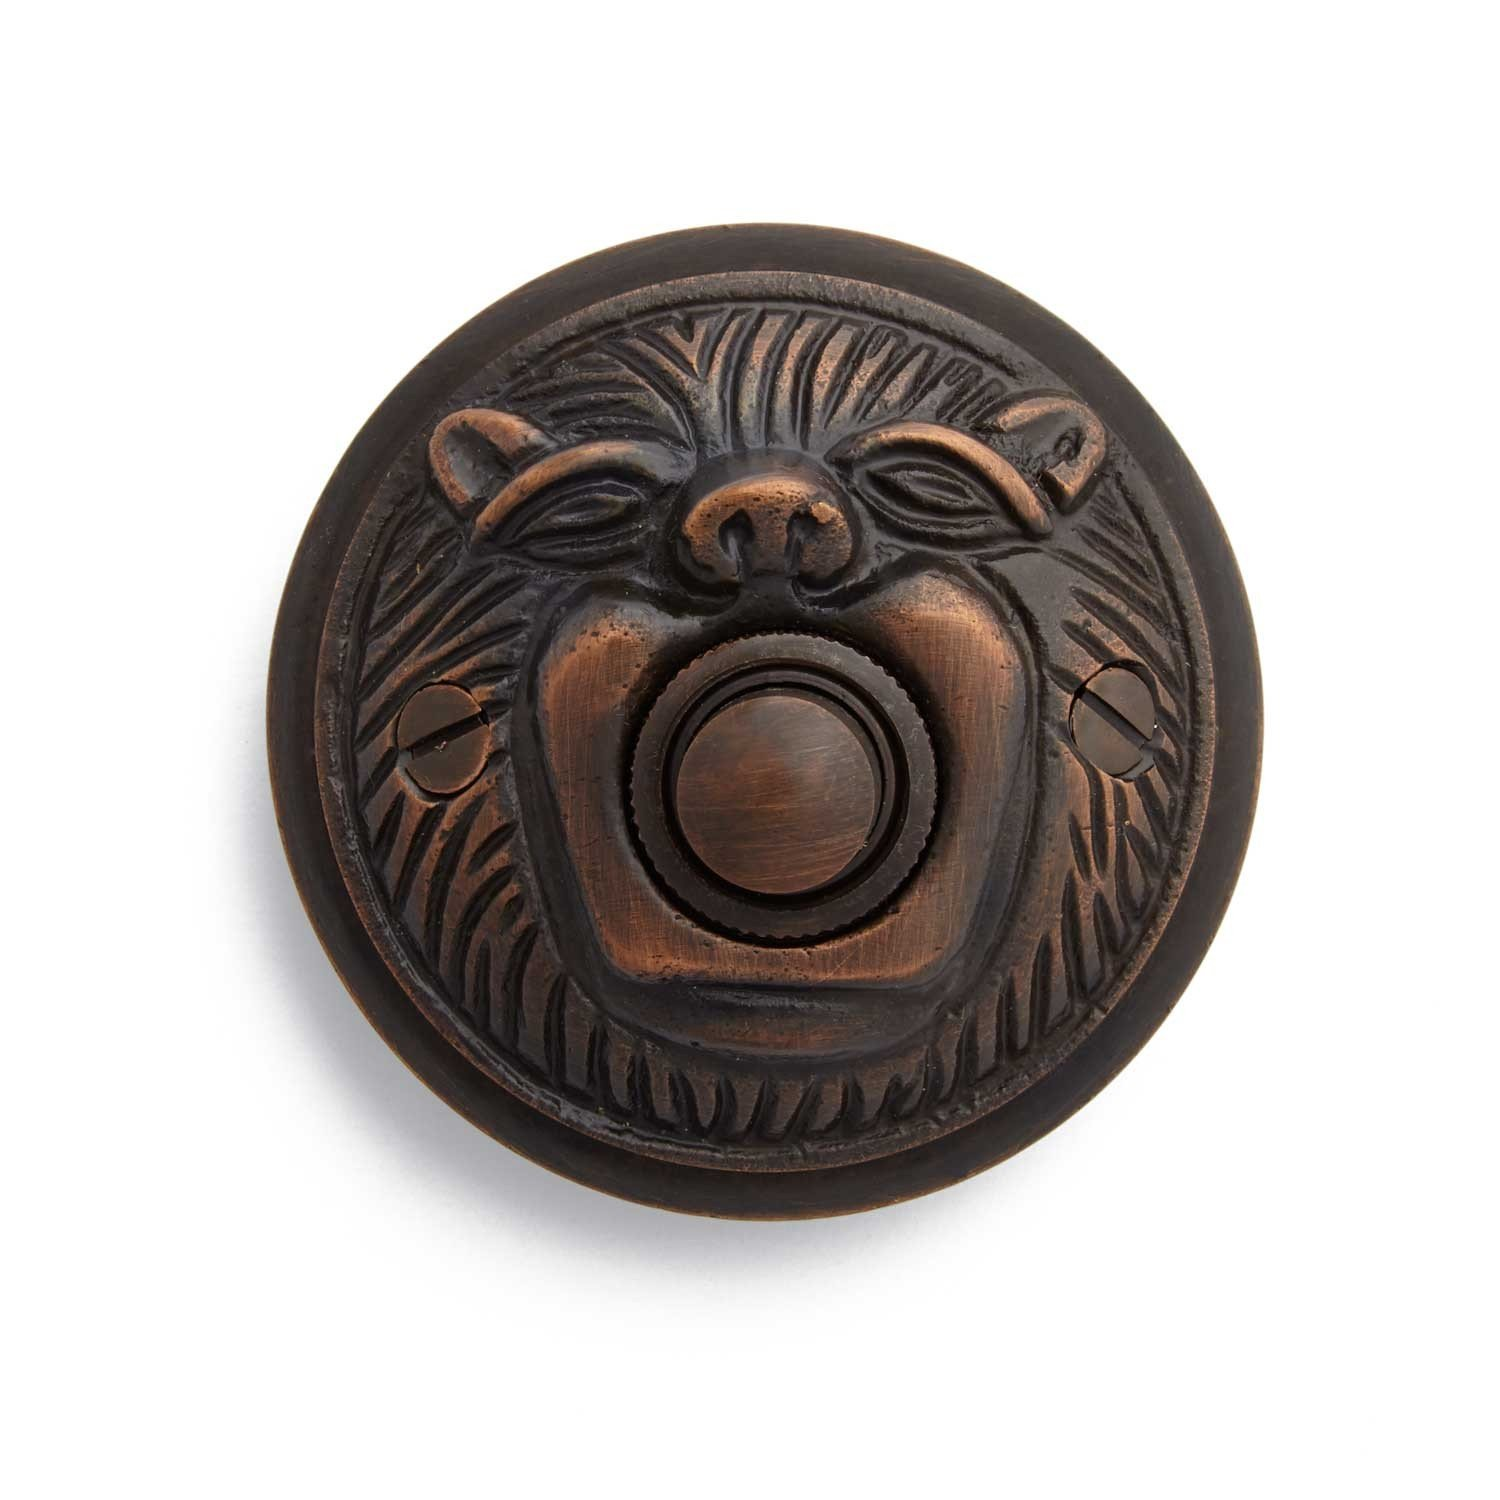 Naiture Brass Lion's Head Doorbell in Oil Rubbed Bronze Finish